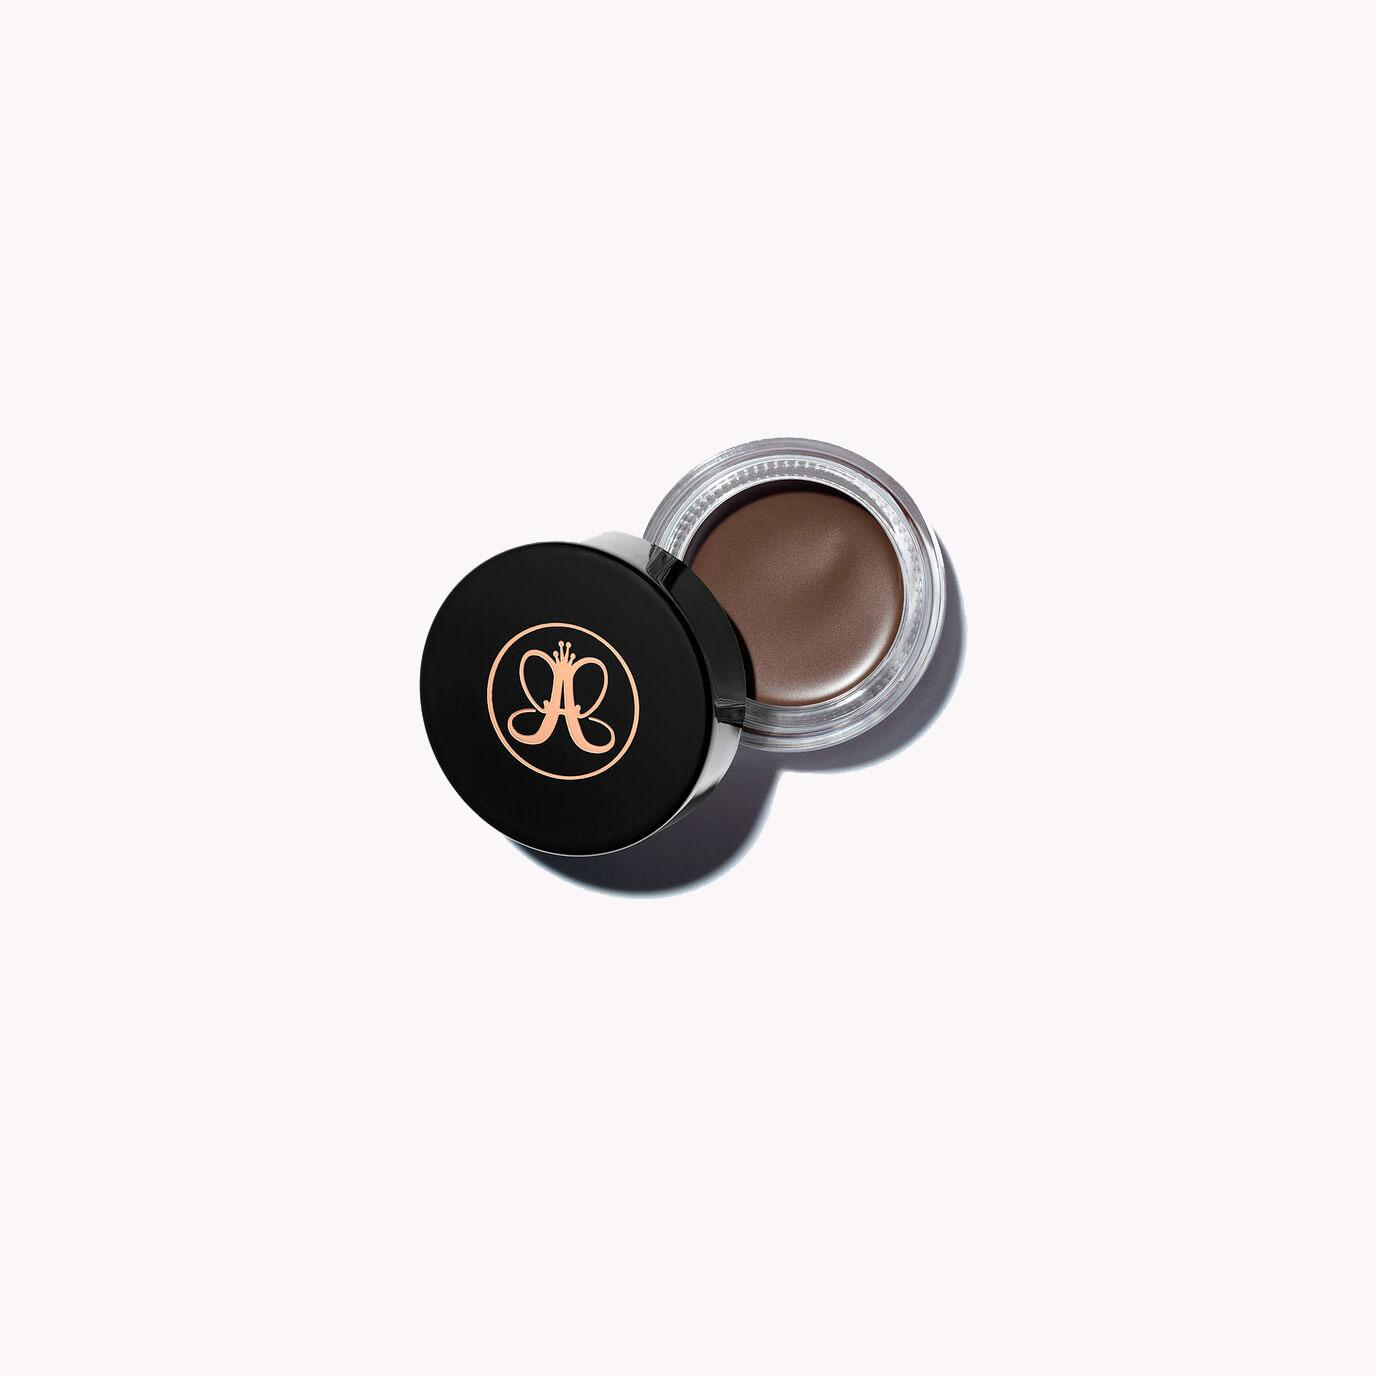 Anastasia Beverly Hills dark brown brow pomade in round glass container against grey background